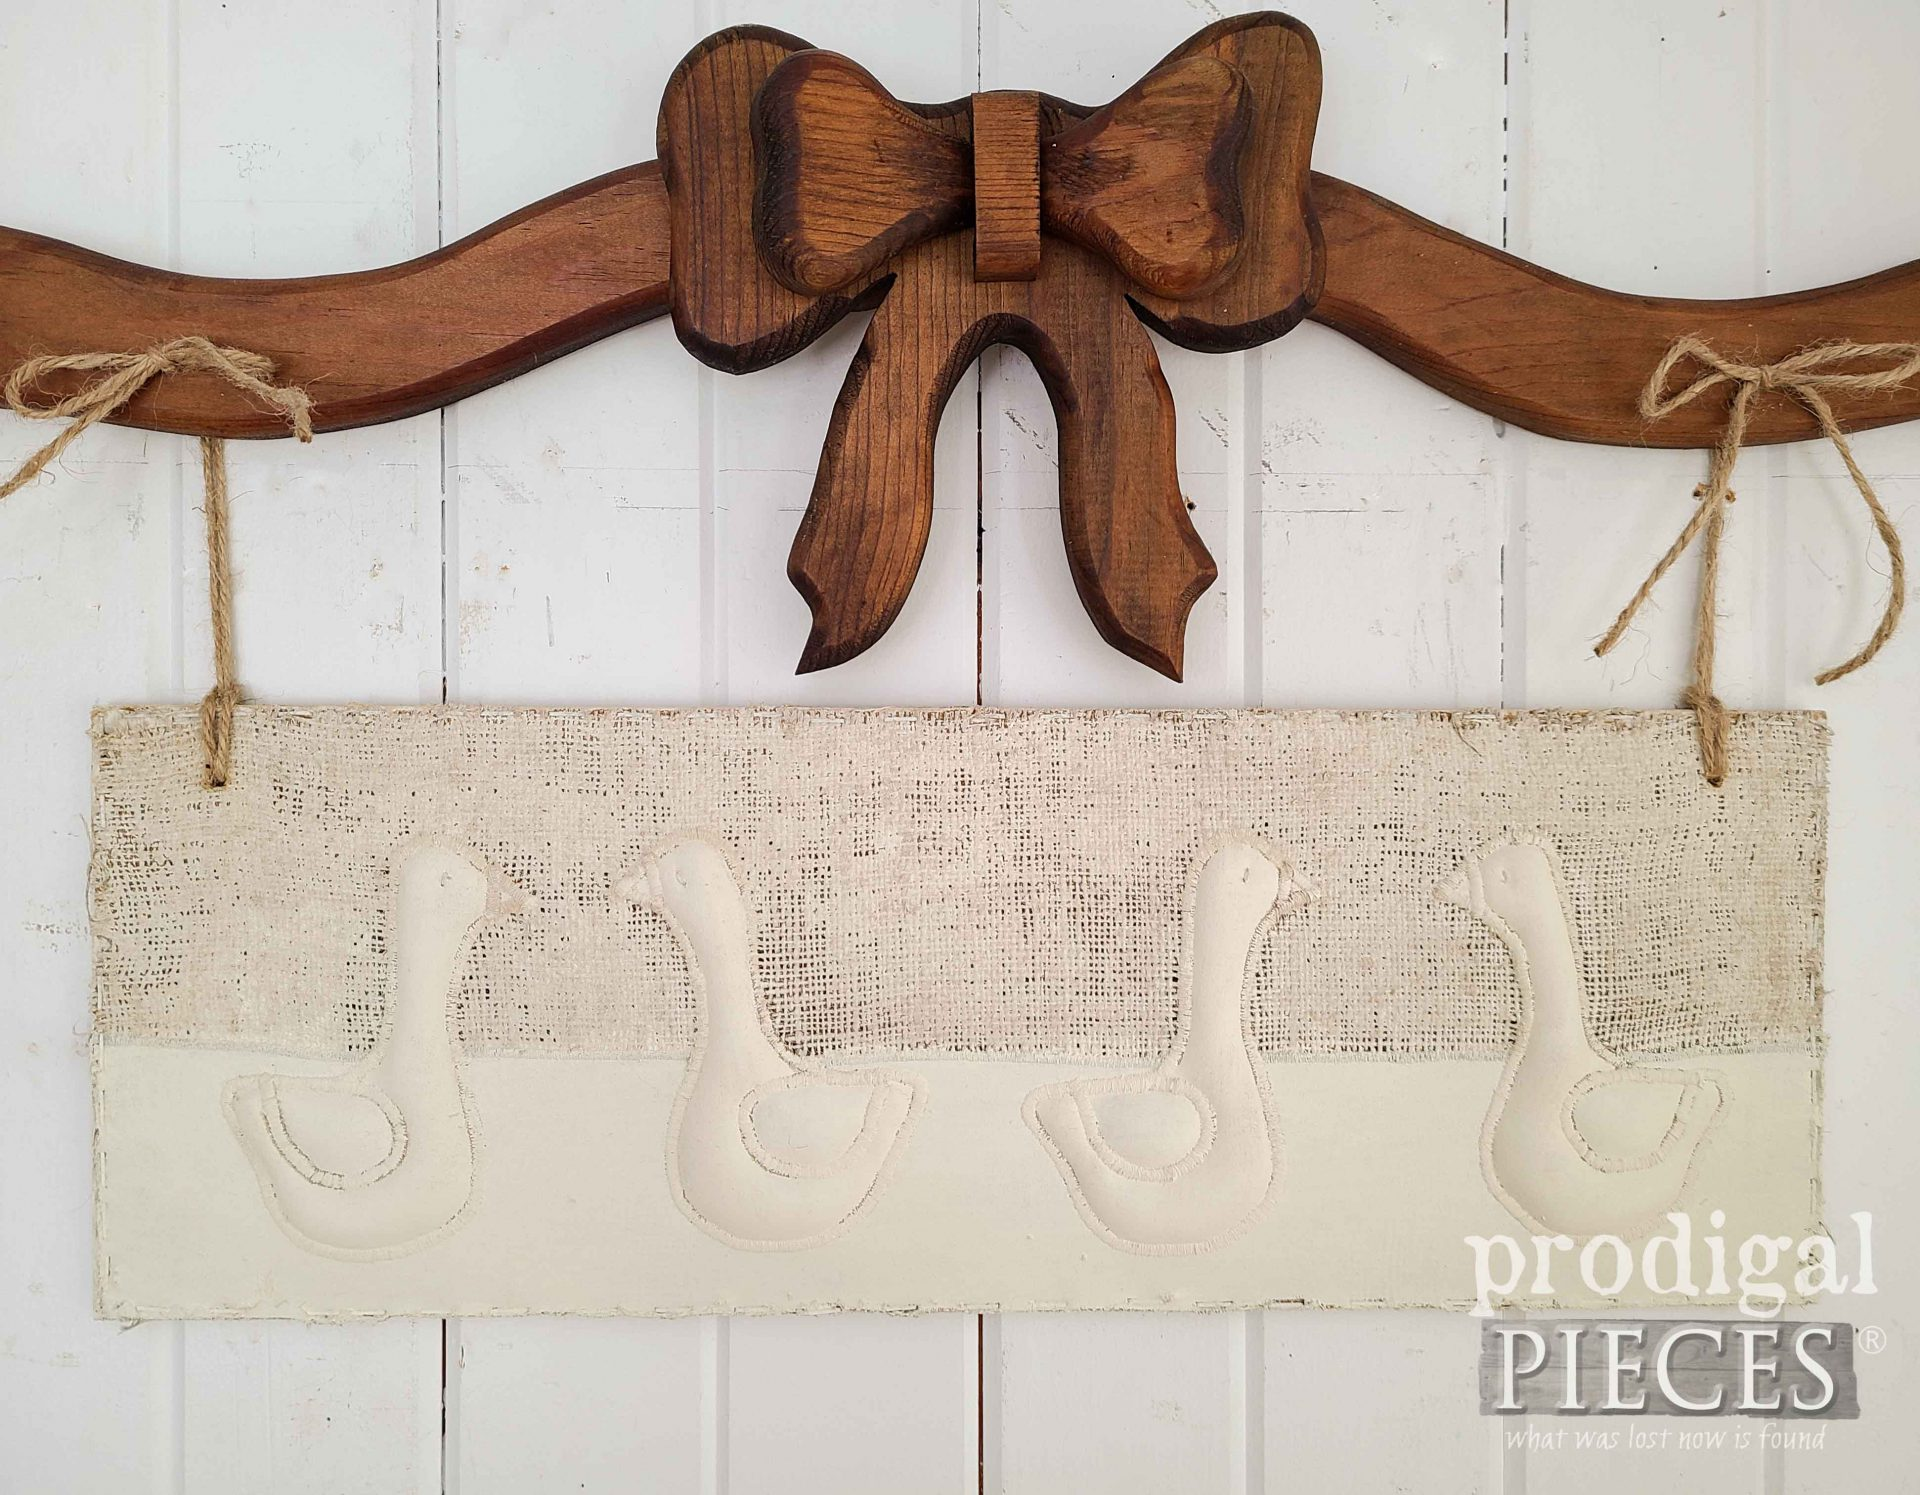 Close-Up by Fabric Geese Wall Decor by Larissa of Prodigal Pieces | prodigalpieces.com #prodigalpieces #farmhouse #animals #diy